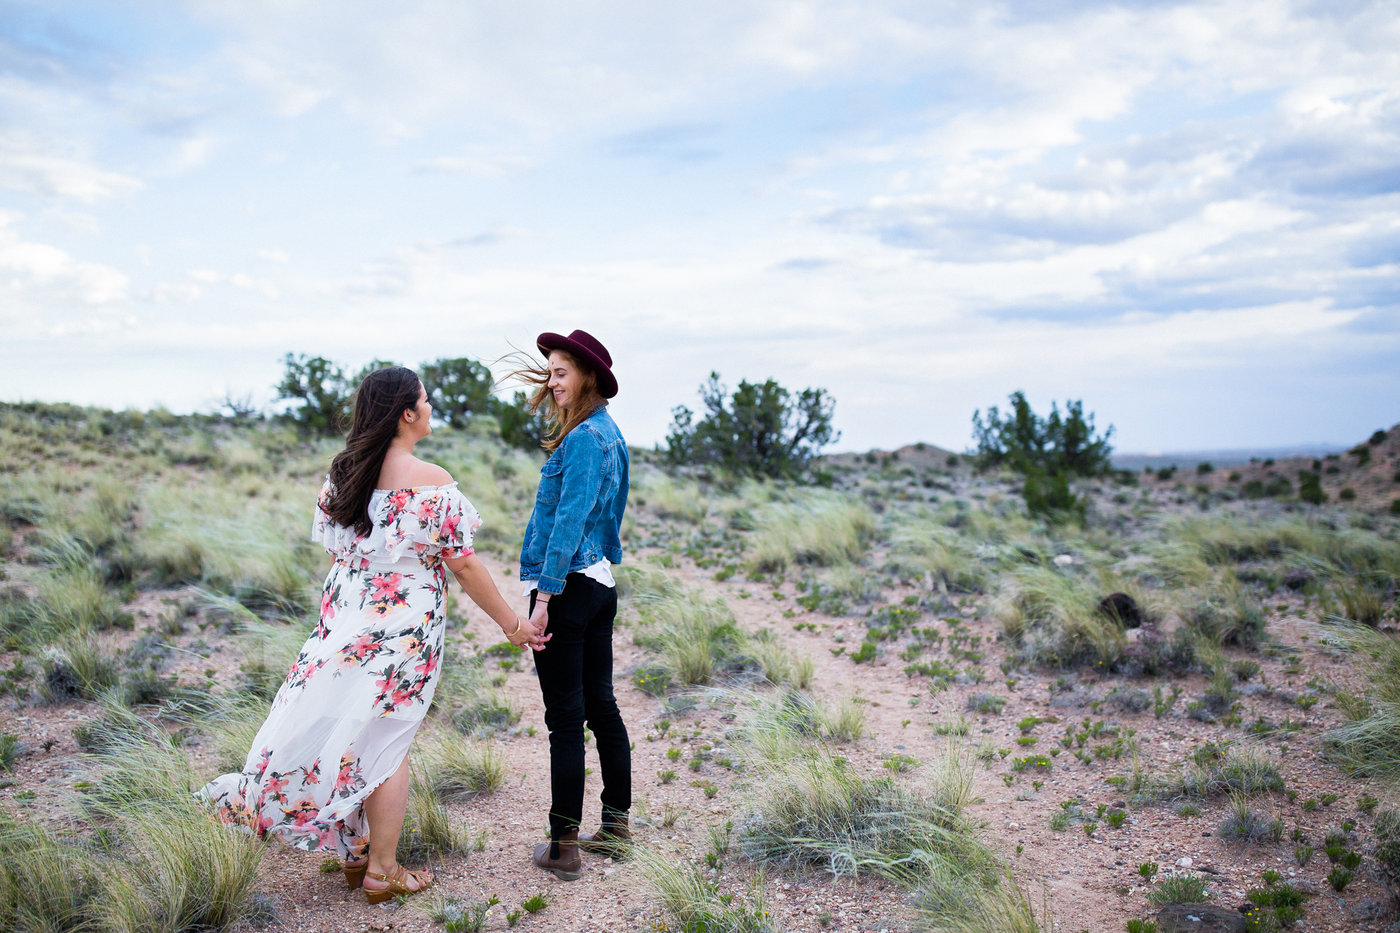 View More: http://chrisikphotography.pass.us/pili--siennas-engagement-photos